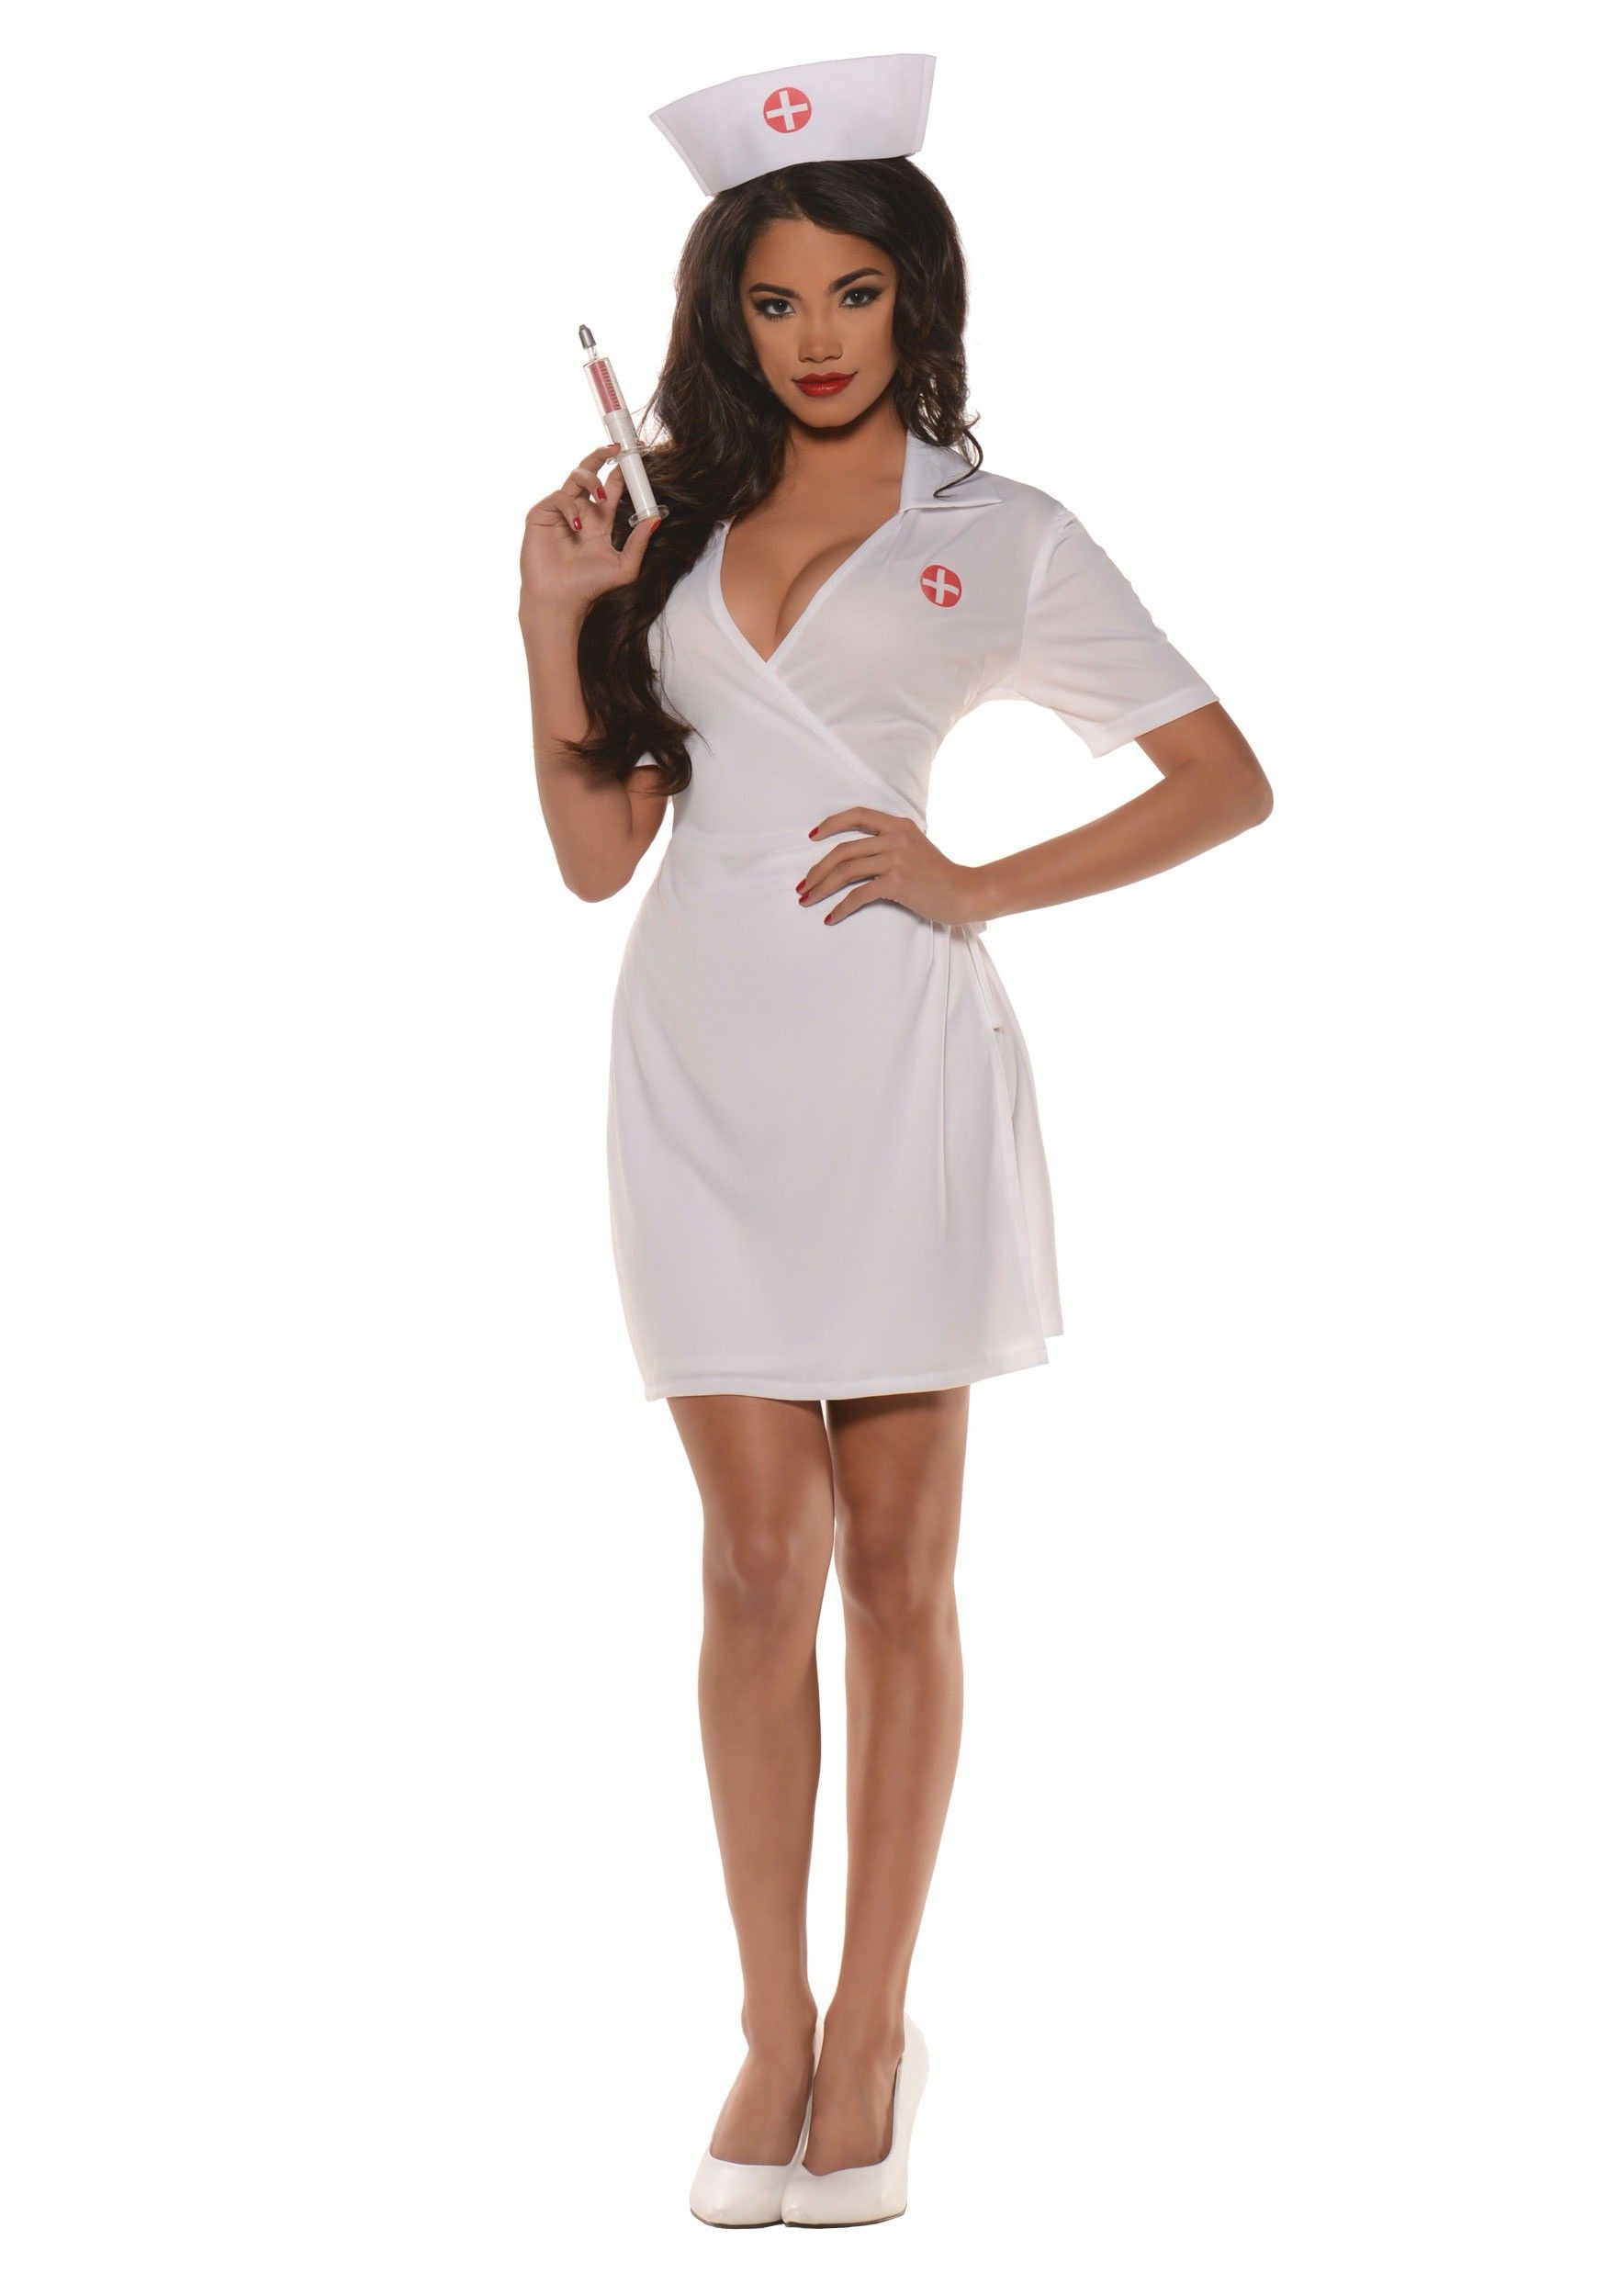 b0b45656cbb0 Women s Doctor s Orders Nurse Costume More